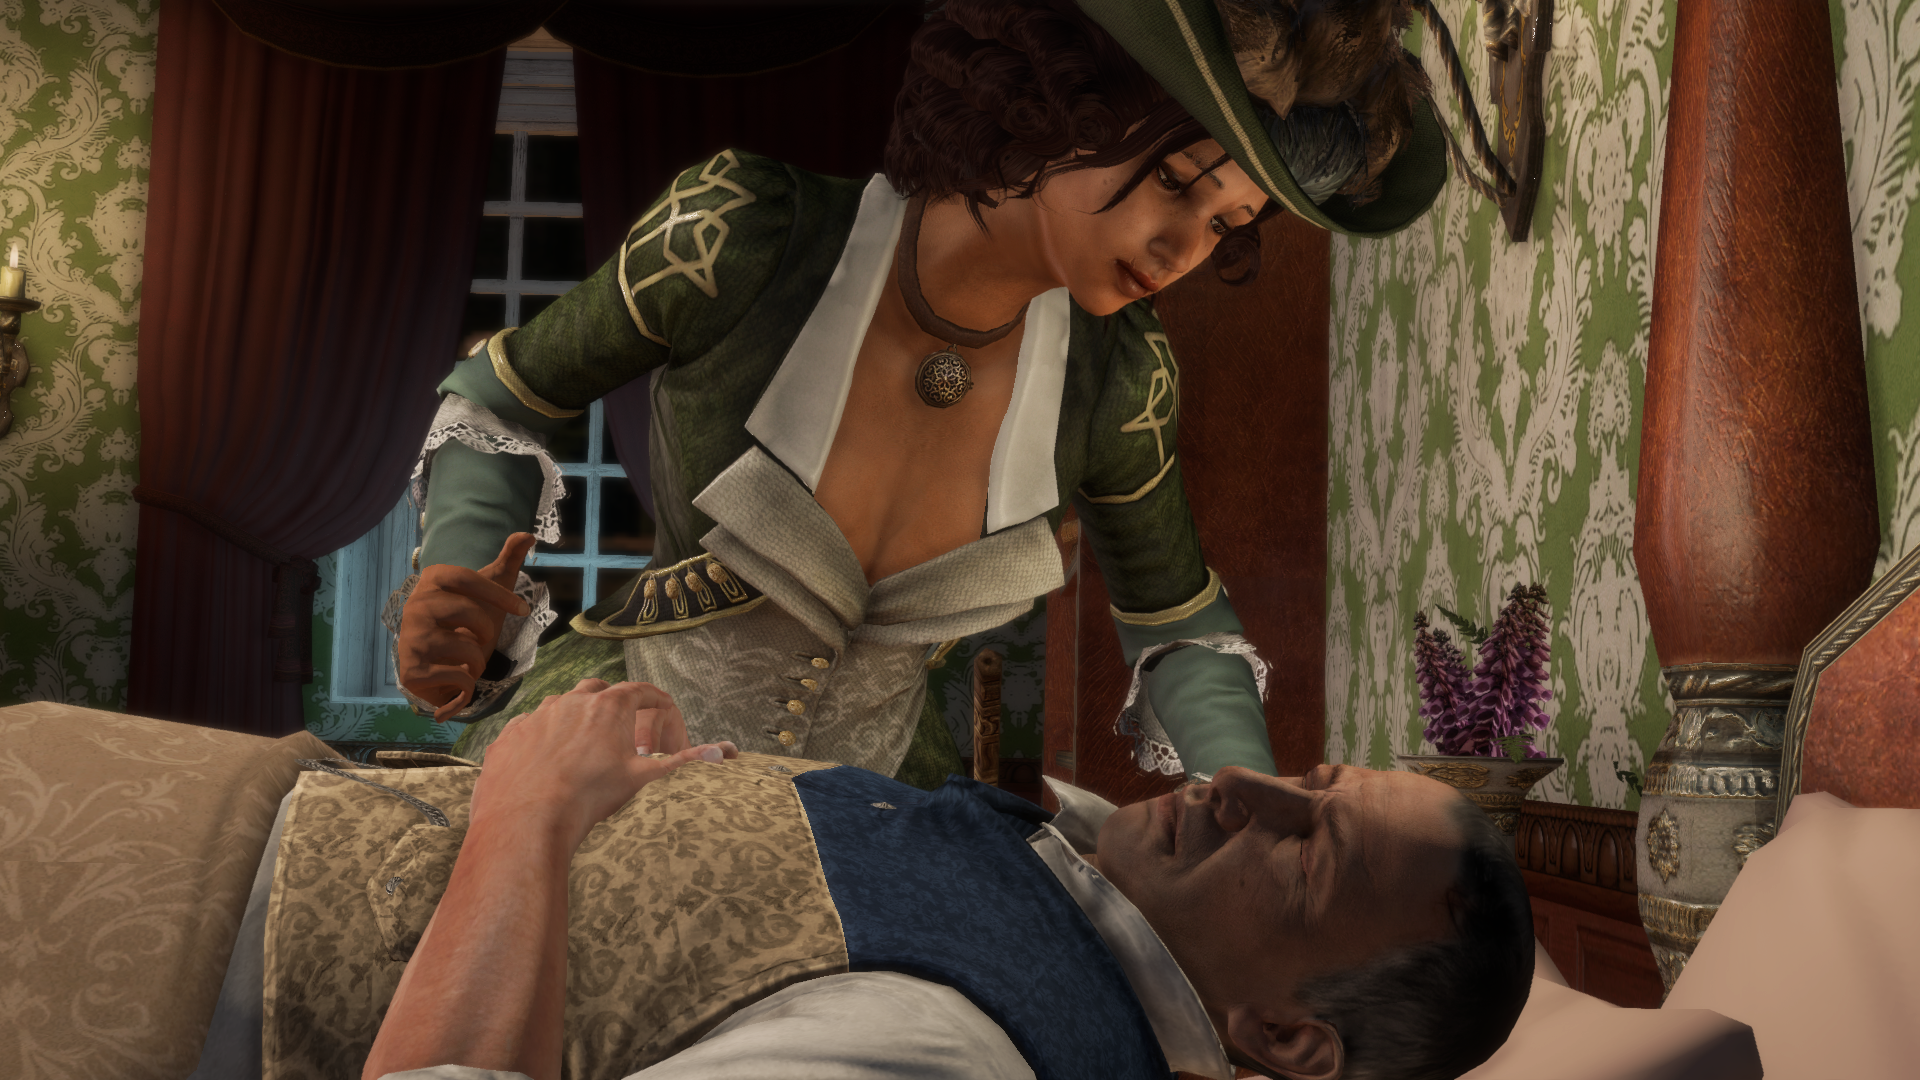 Aveline assassin creed porno smut clips